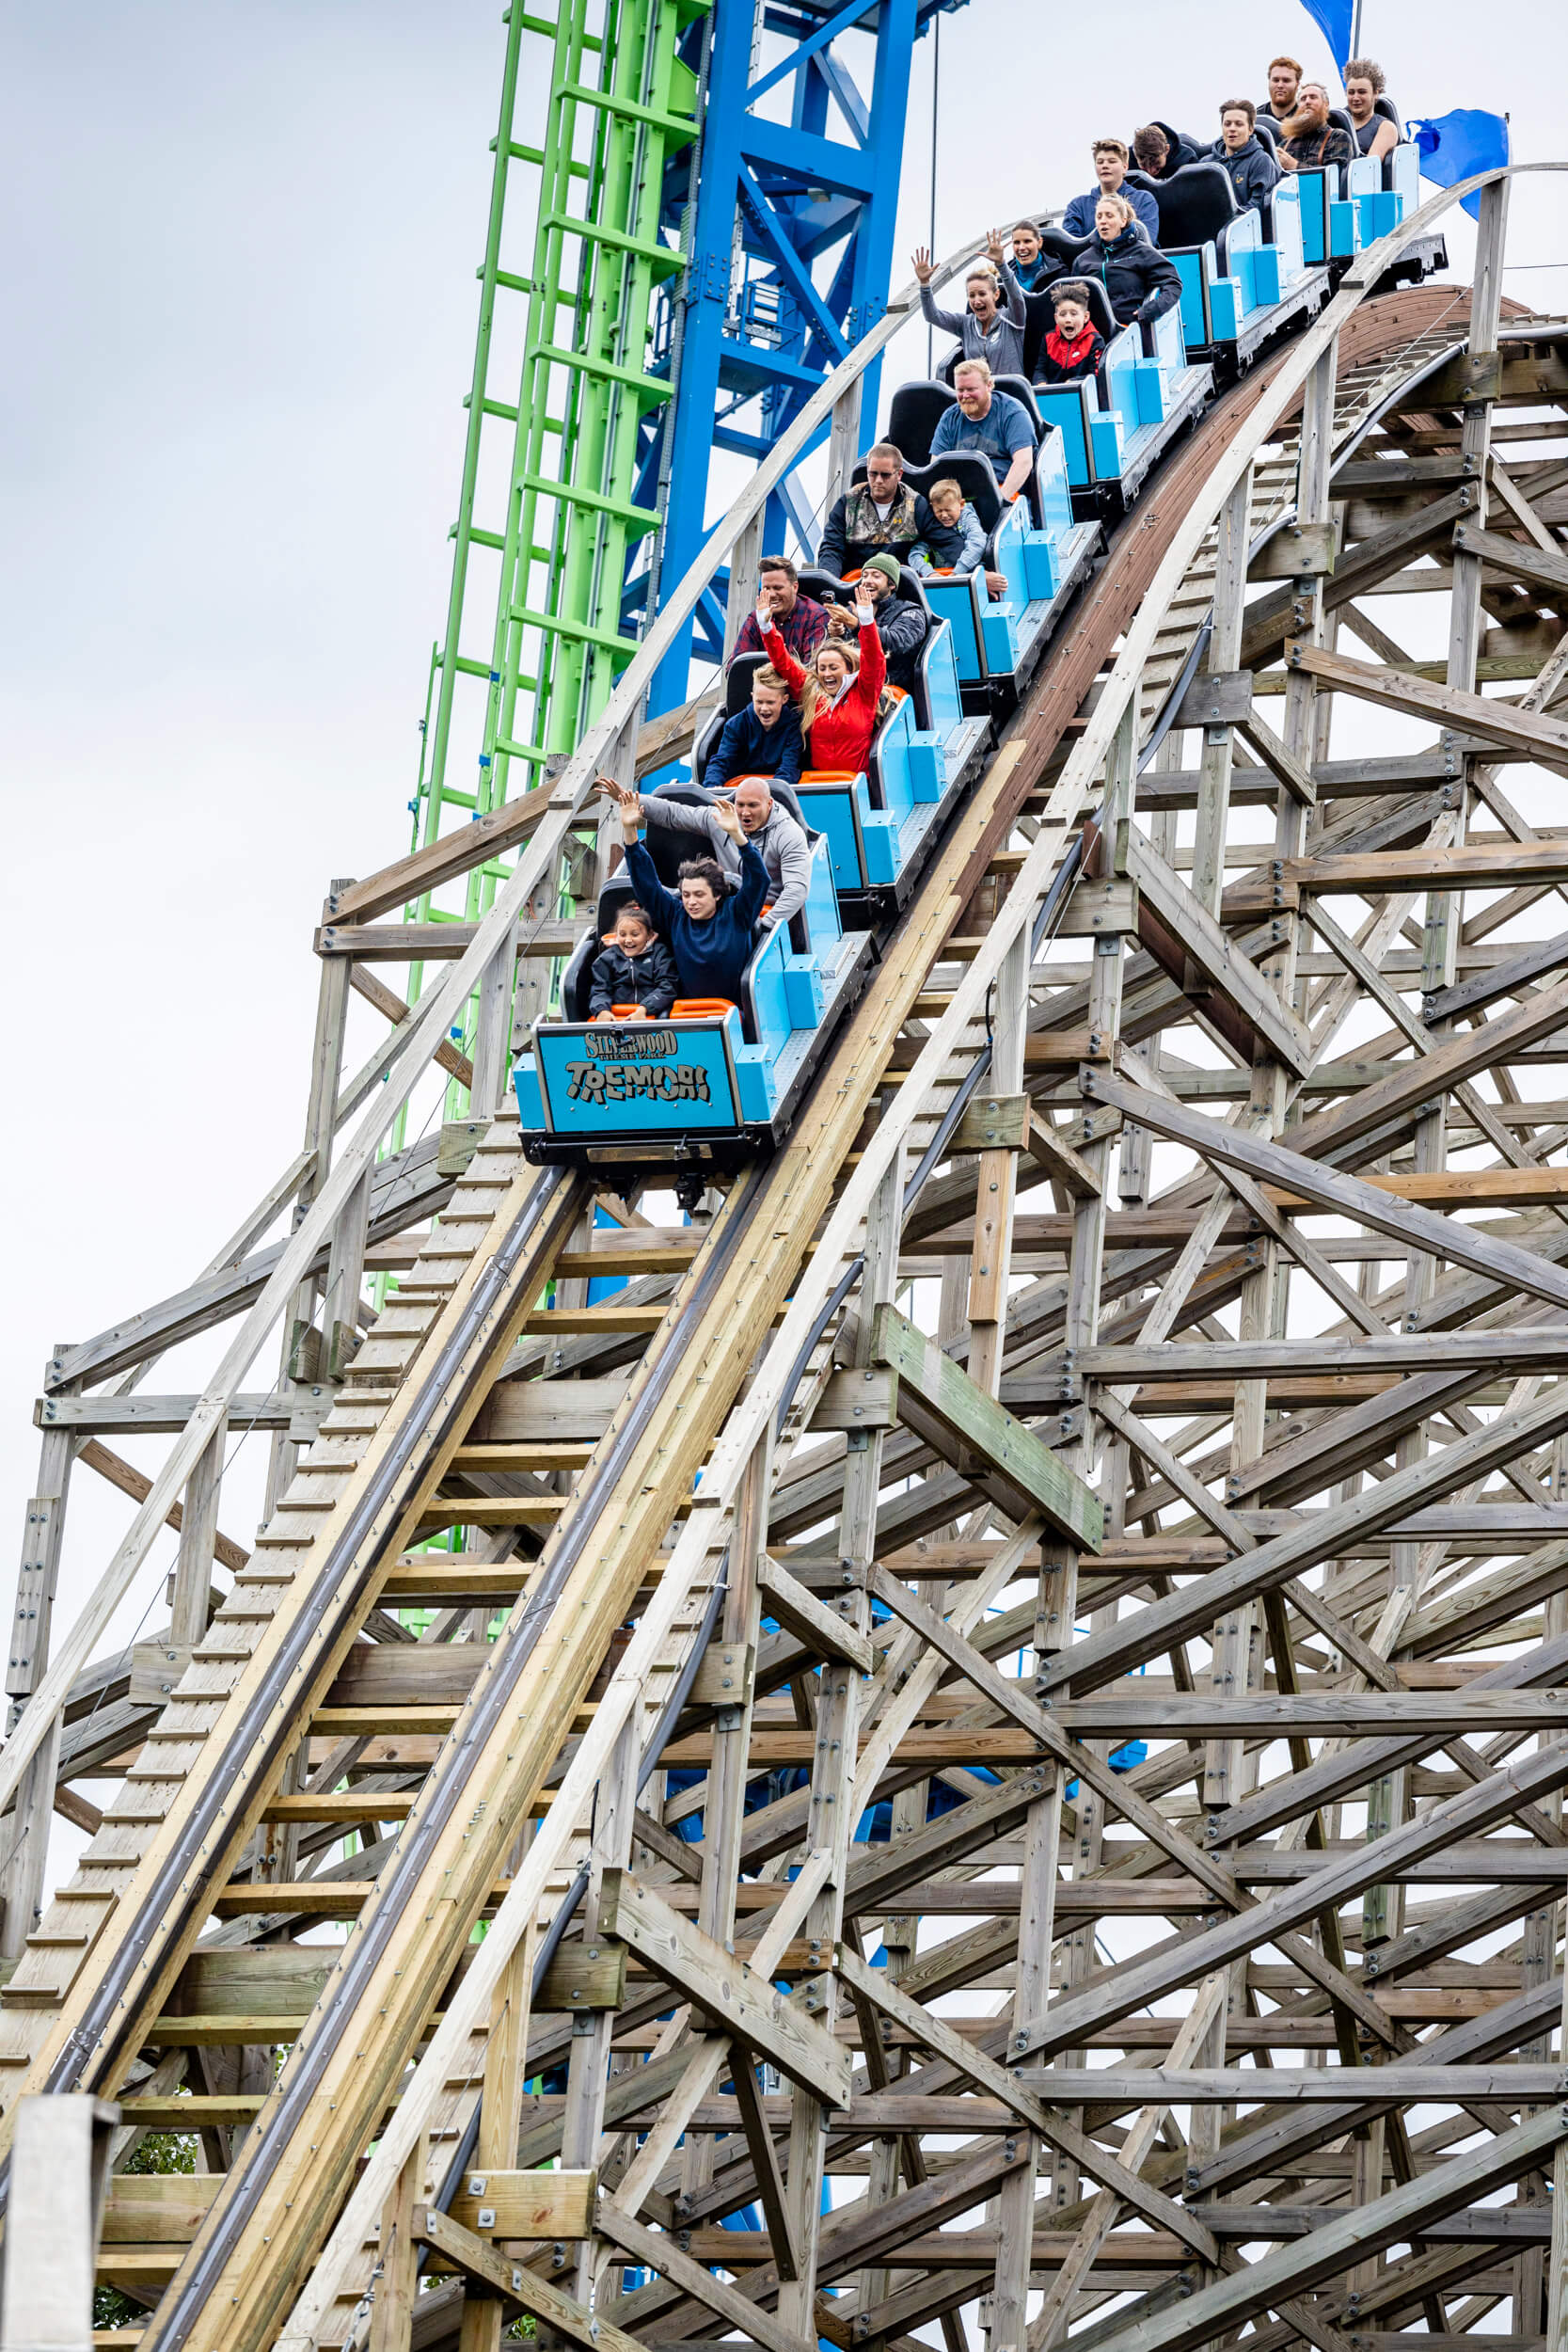 group of twenty people on a wooden roller coaster at Silverwood Theme Park